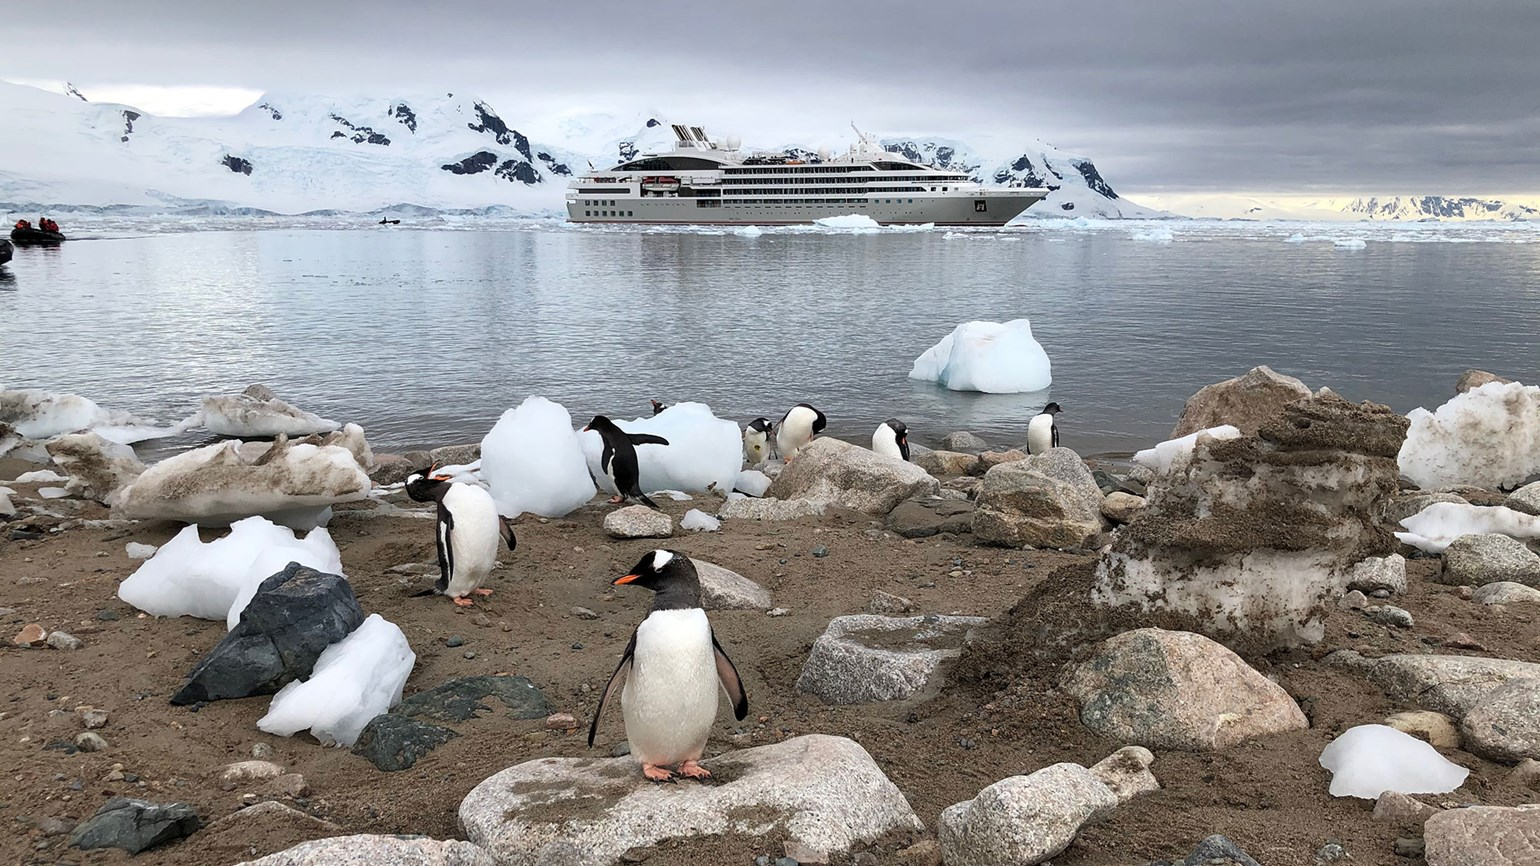 Antarctica's High-Temperature Record Of 18.3 Degrees In February 2020 Has Been Verified And Validated By WMO